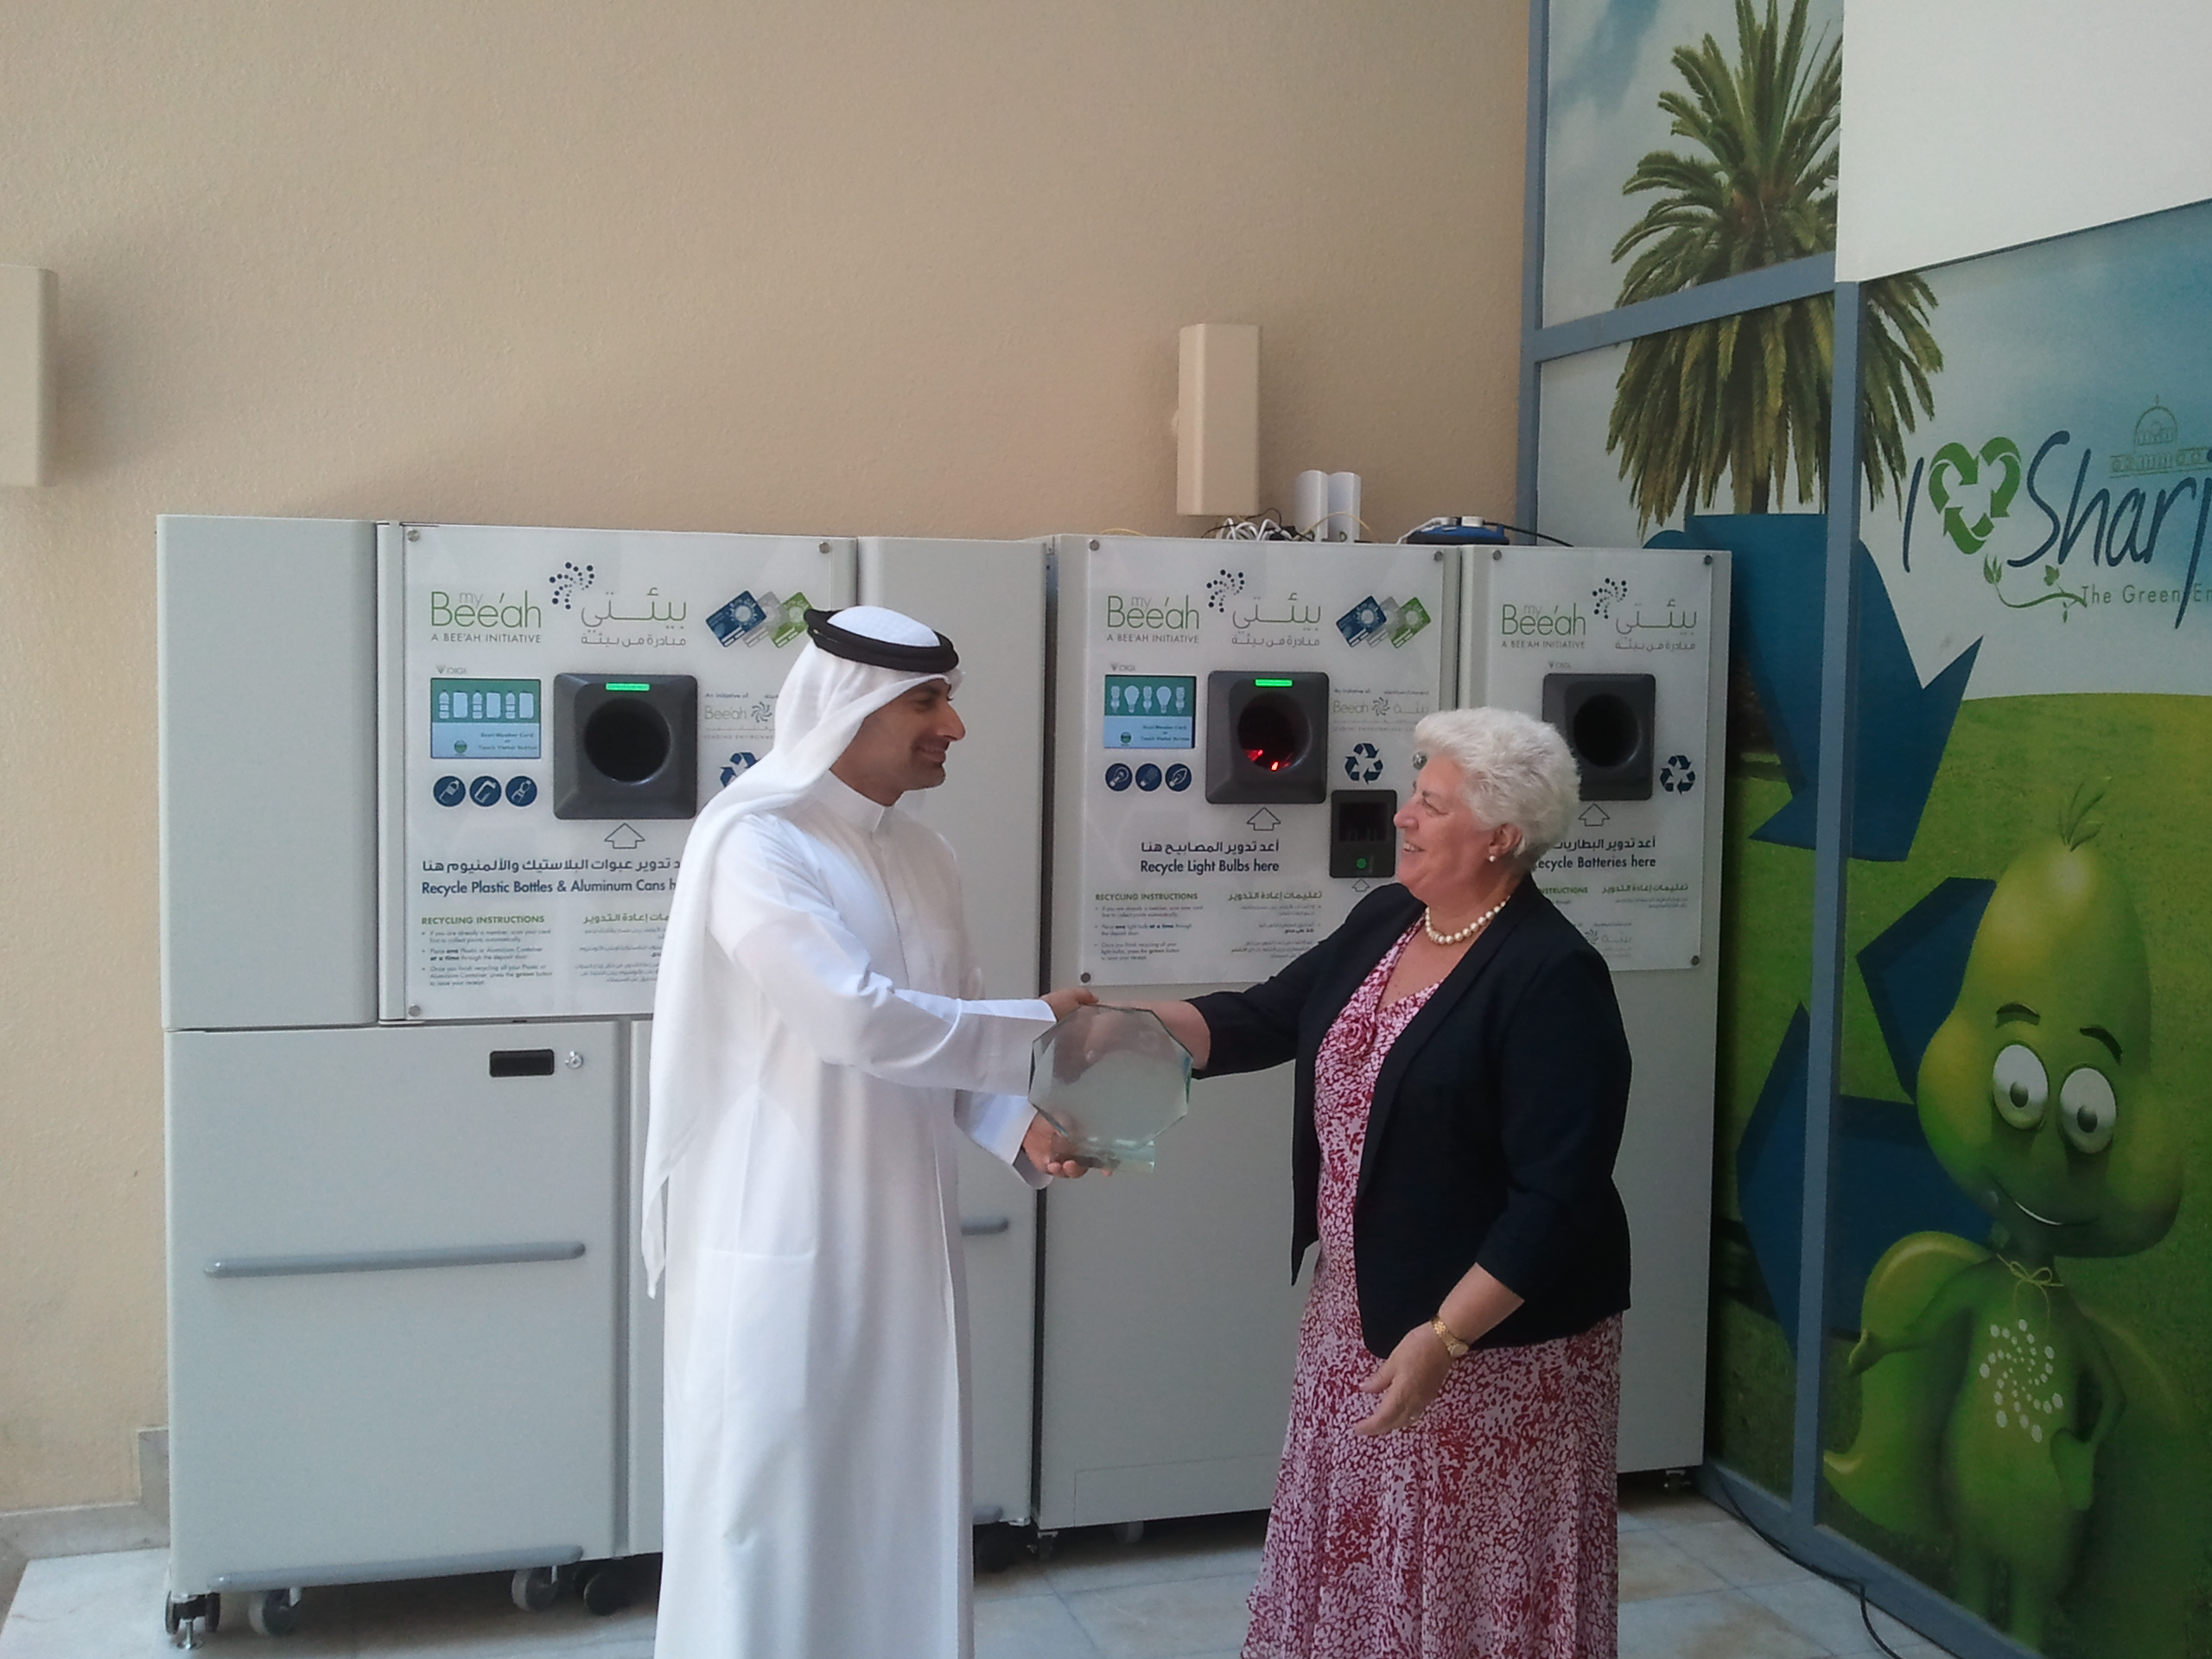 Bee'ah Reverse Vending Award 2014